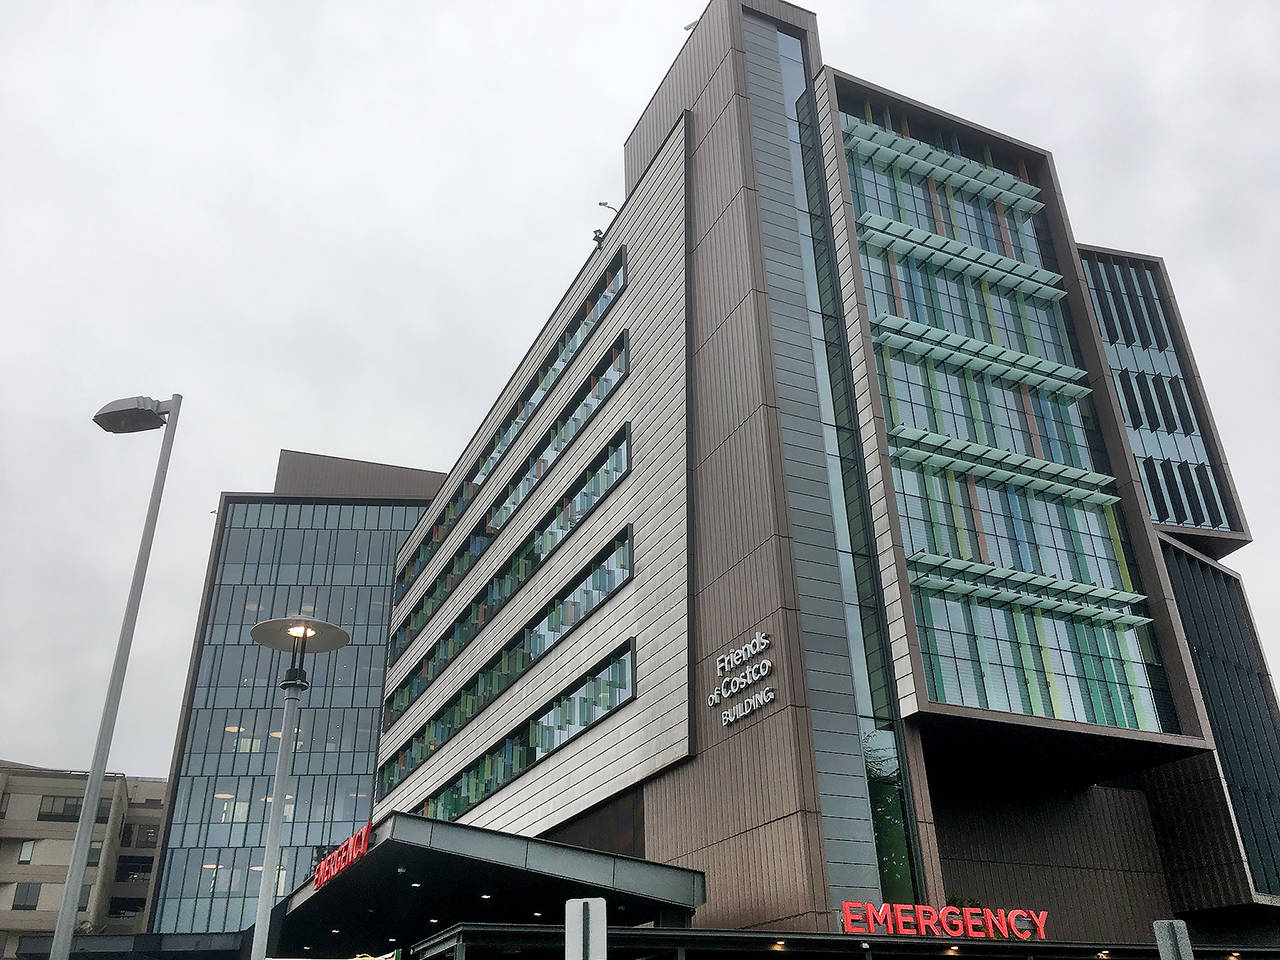 Seattle Children's Hospital is facing a class-action lawsuit on behalf of families of patients who have been sickened by Aspergillus mold. (Sue Misao / Herald file)